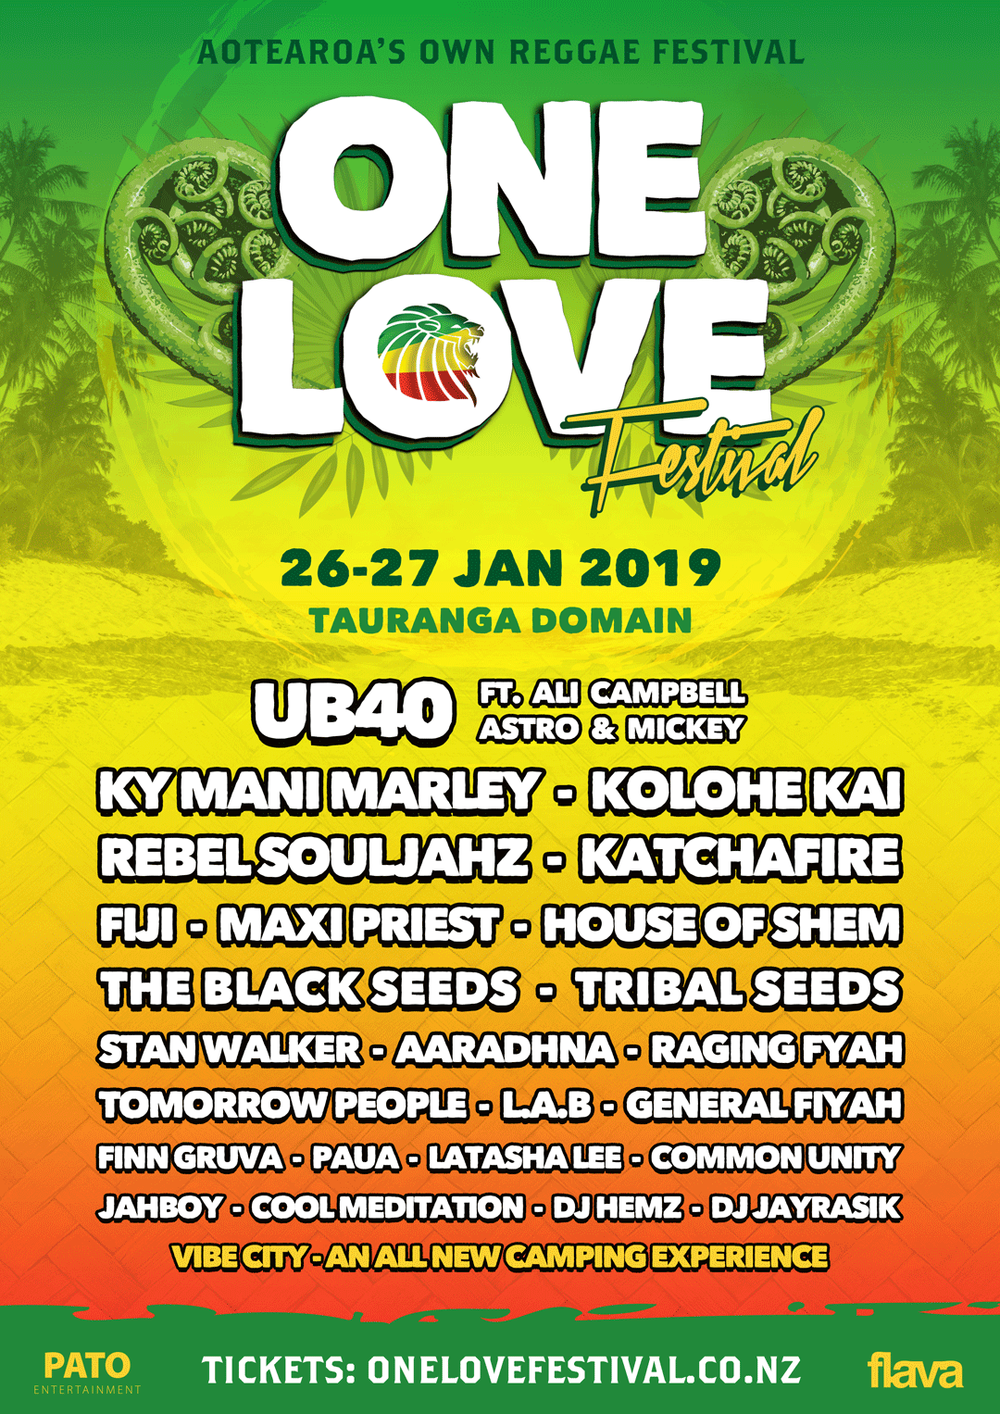 Tickets from  www.onelovefestival.co.nz